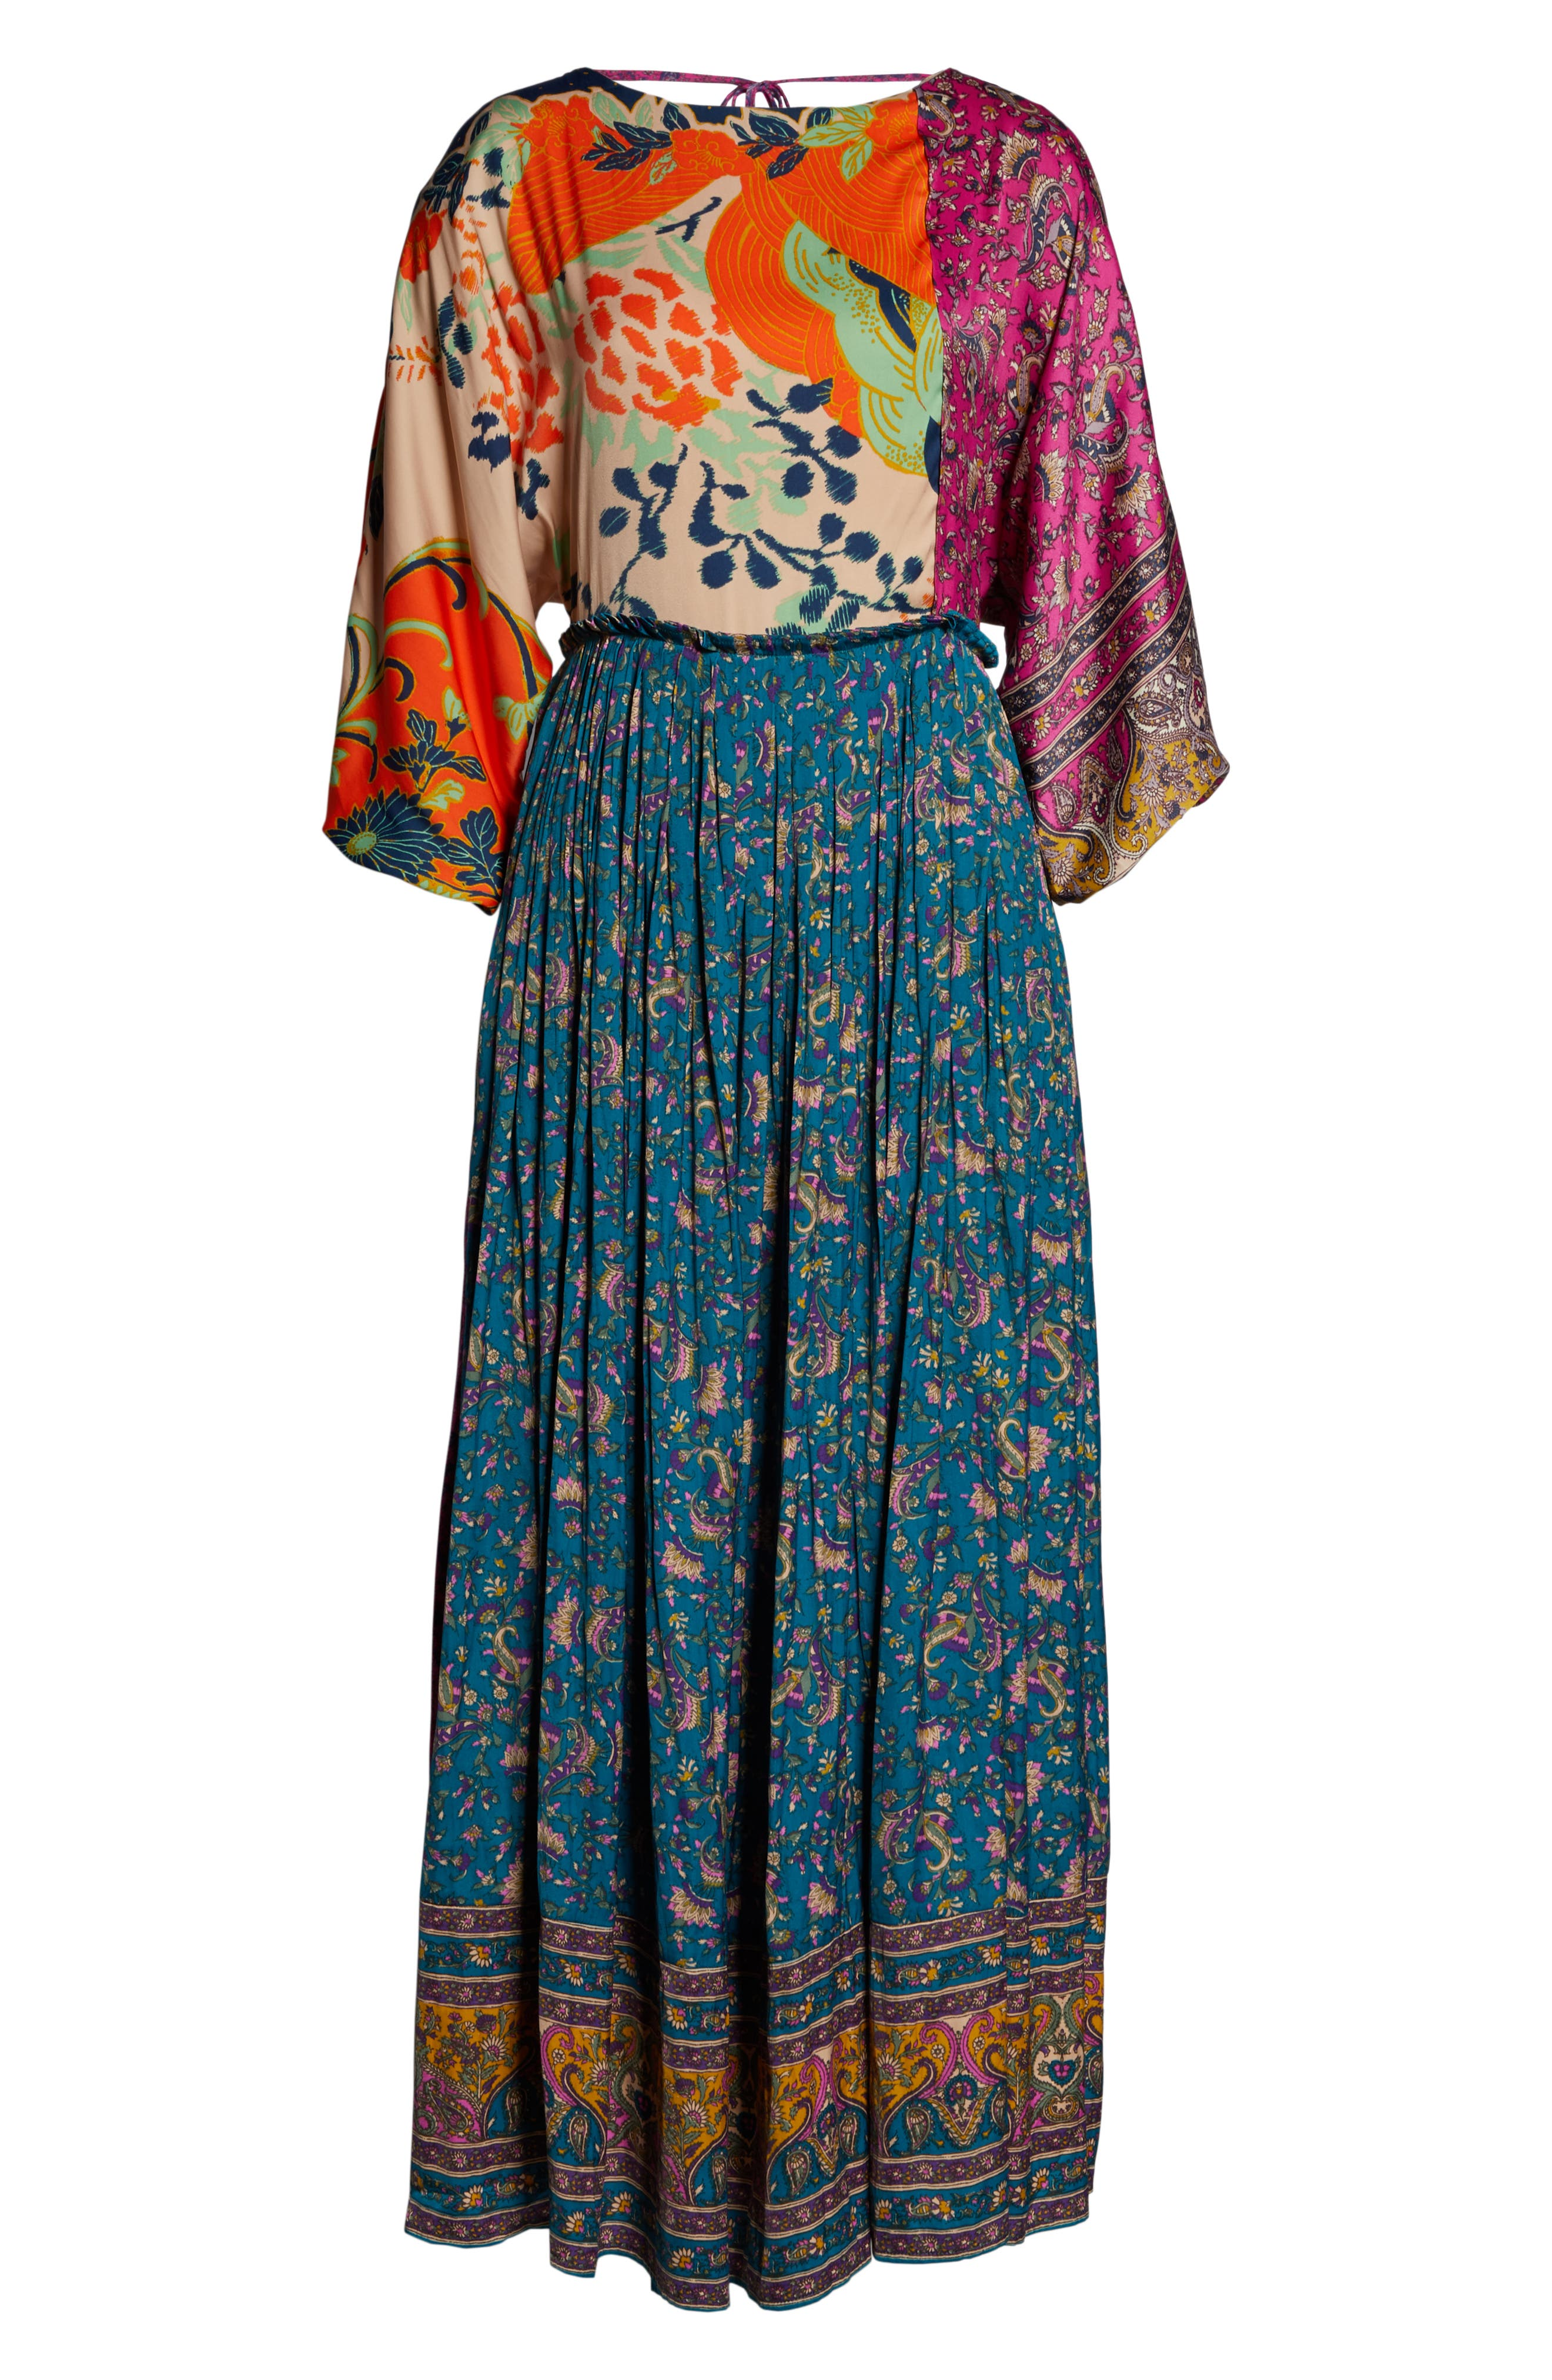 FREE PEOPLE,                             What You Want Maxi Dress,                             Alternate thumbnail 8, color,                             MULTI